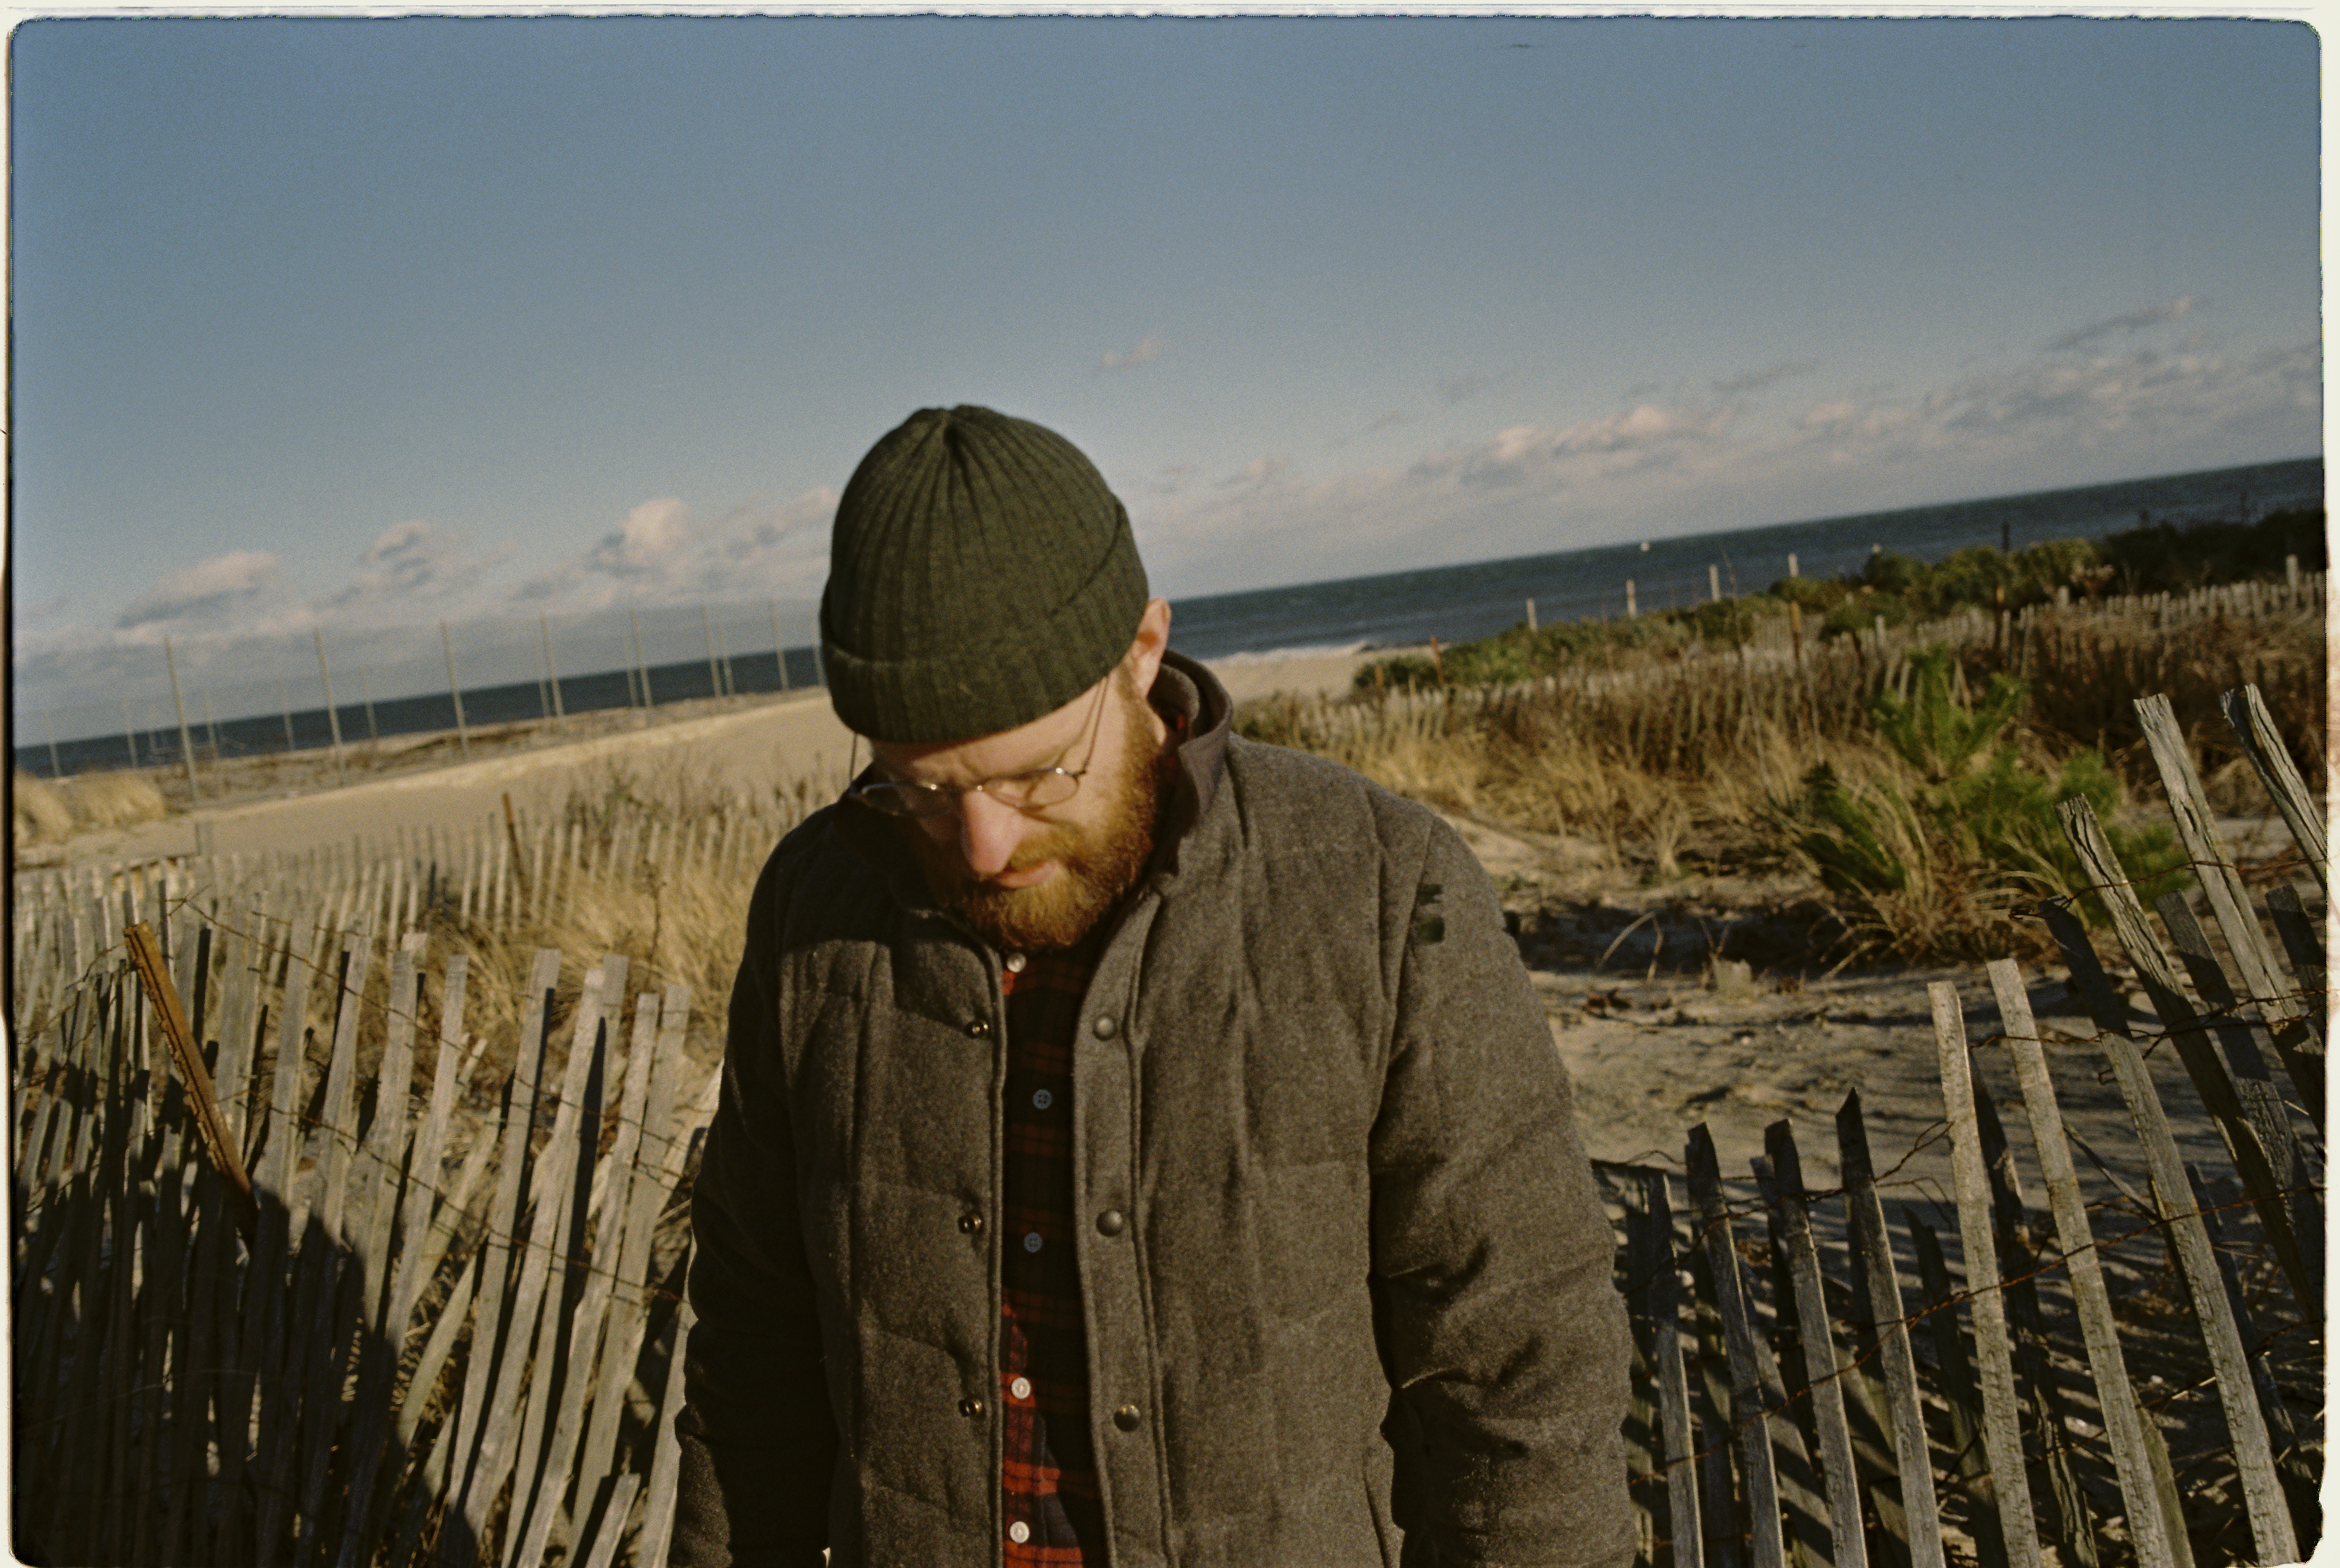 INTERVIEW: Dan Campbell on 'Routine Maintenance' and Aaron West's redemption